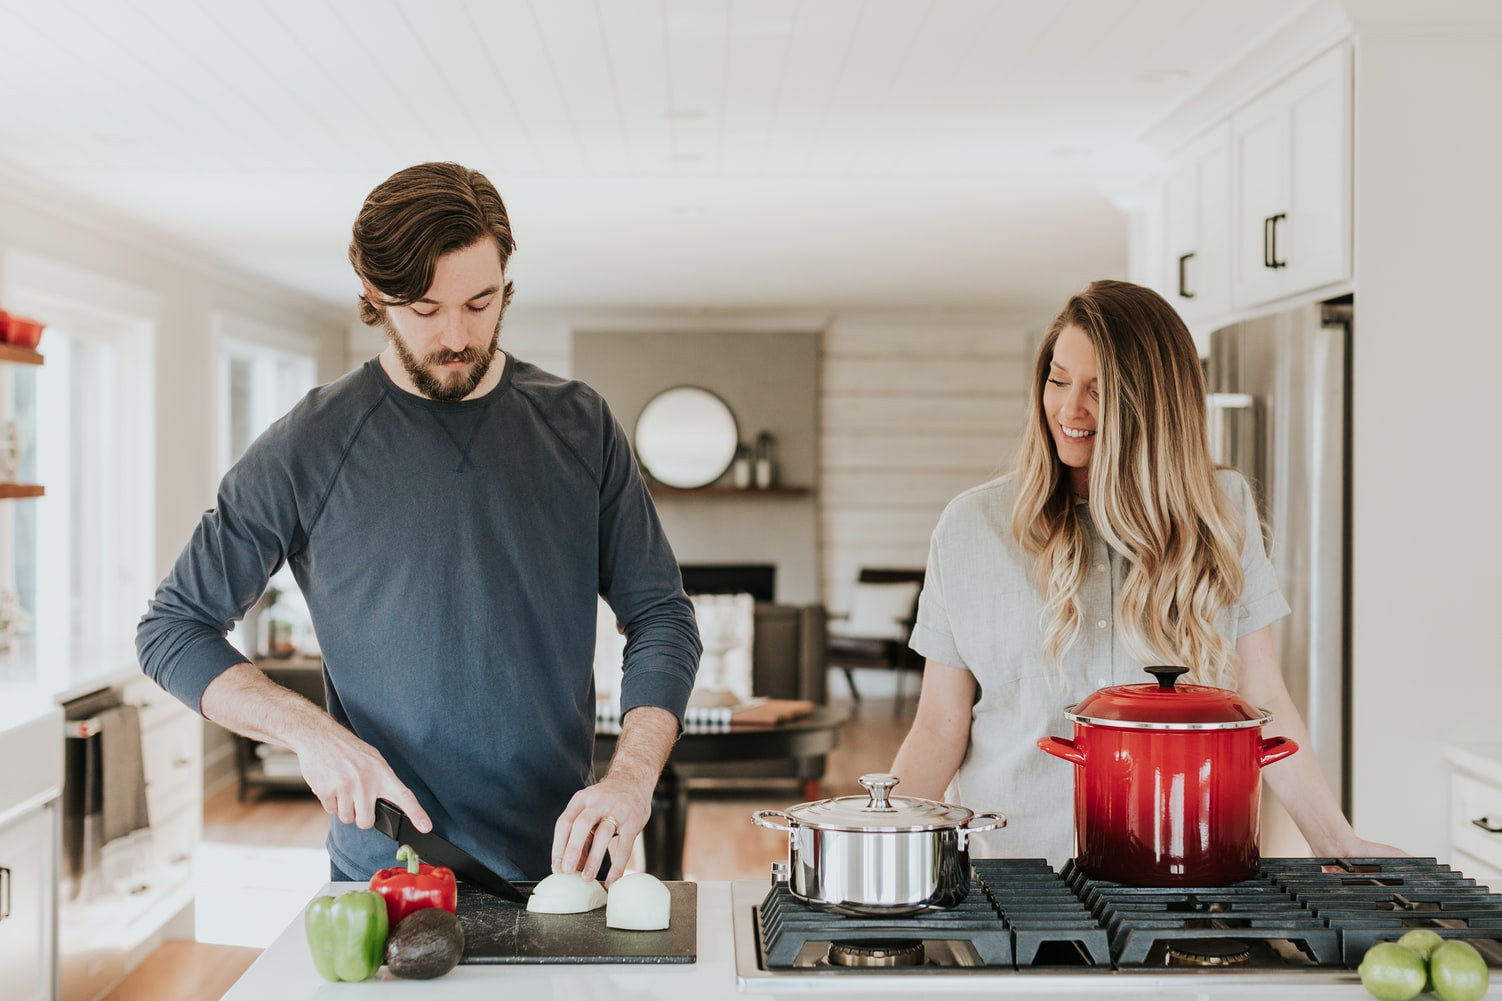 couples in the kitchen while the man is cutting